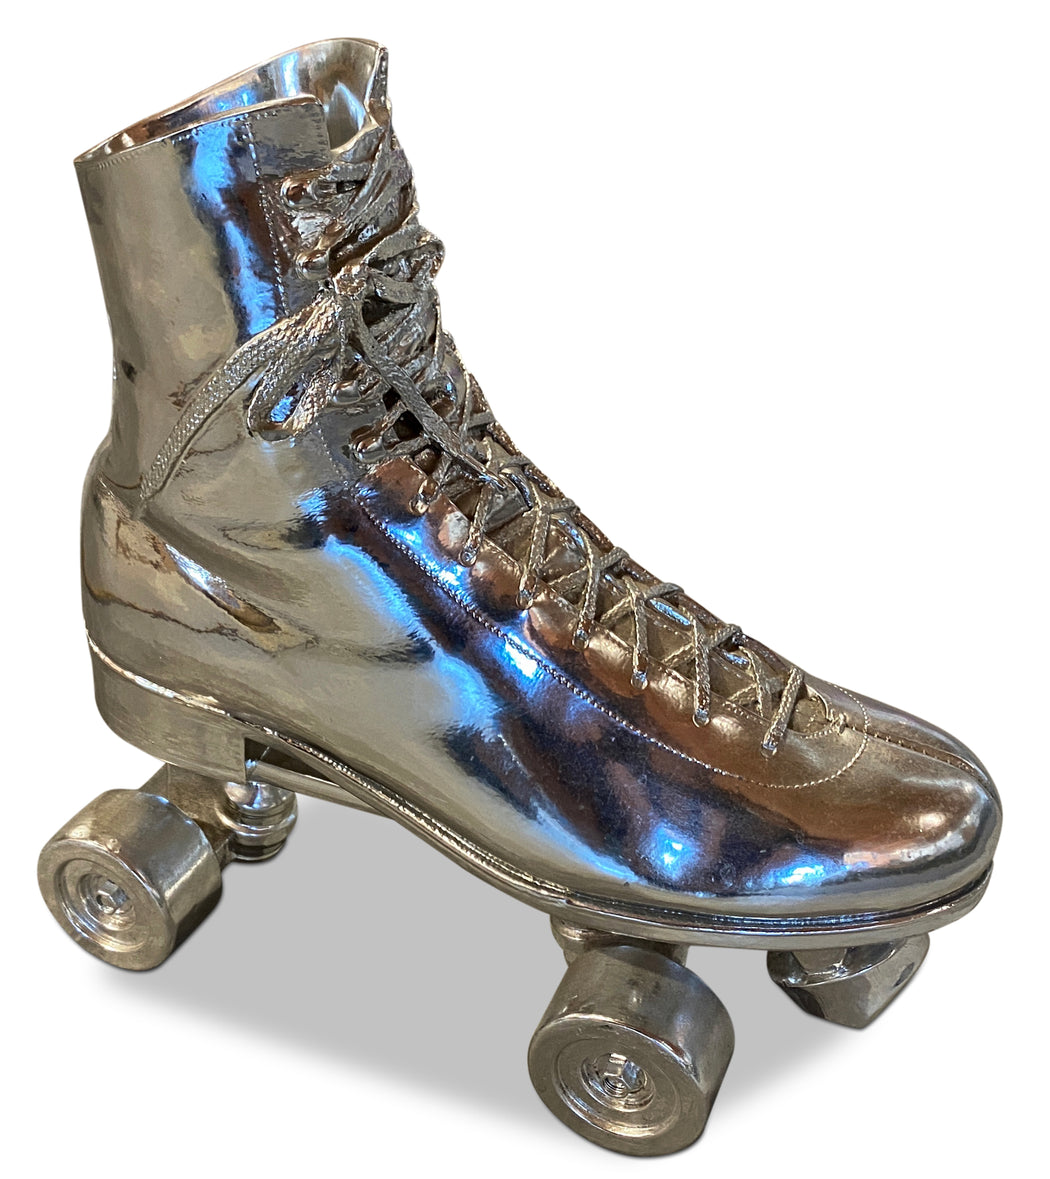 Chromed Rollerskate Sculpture